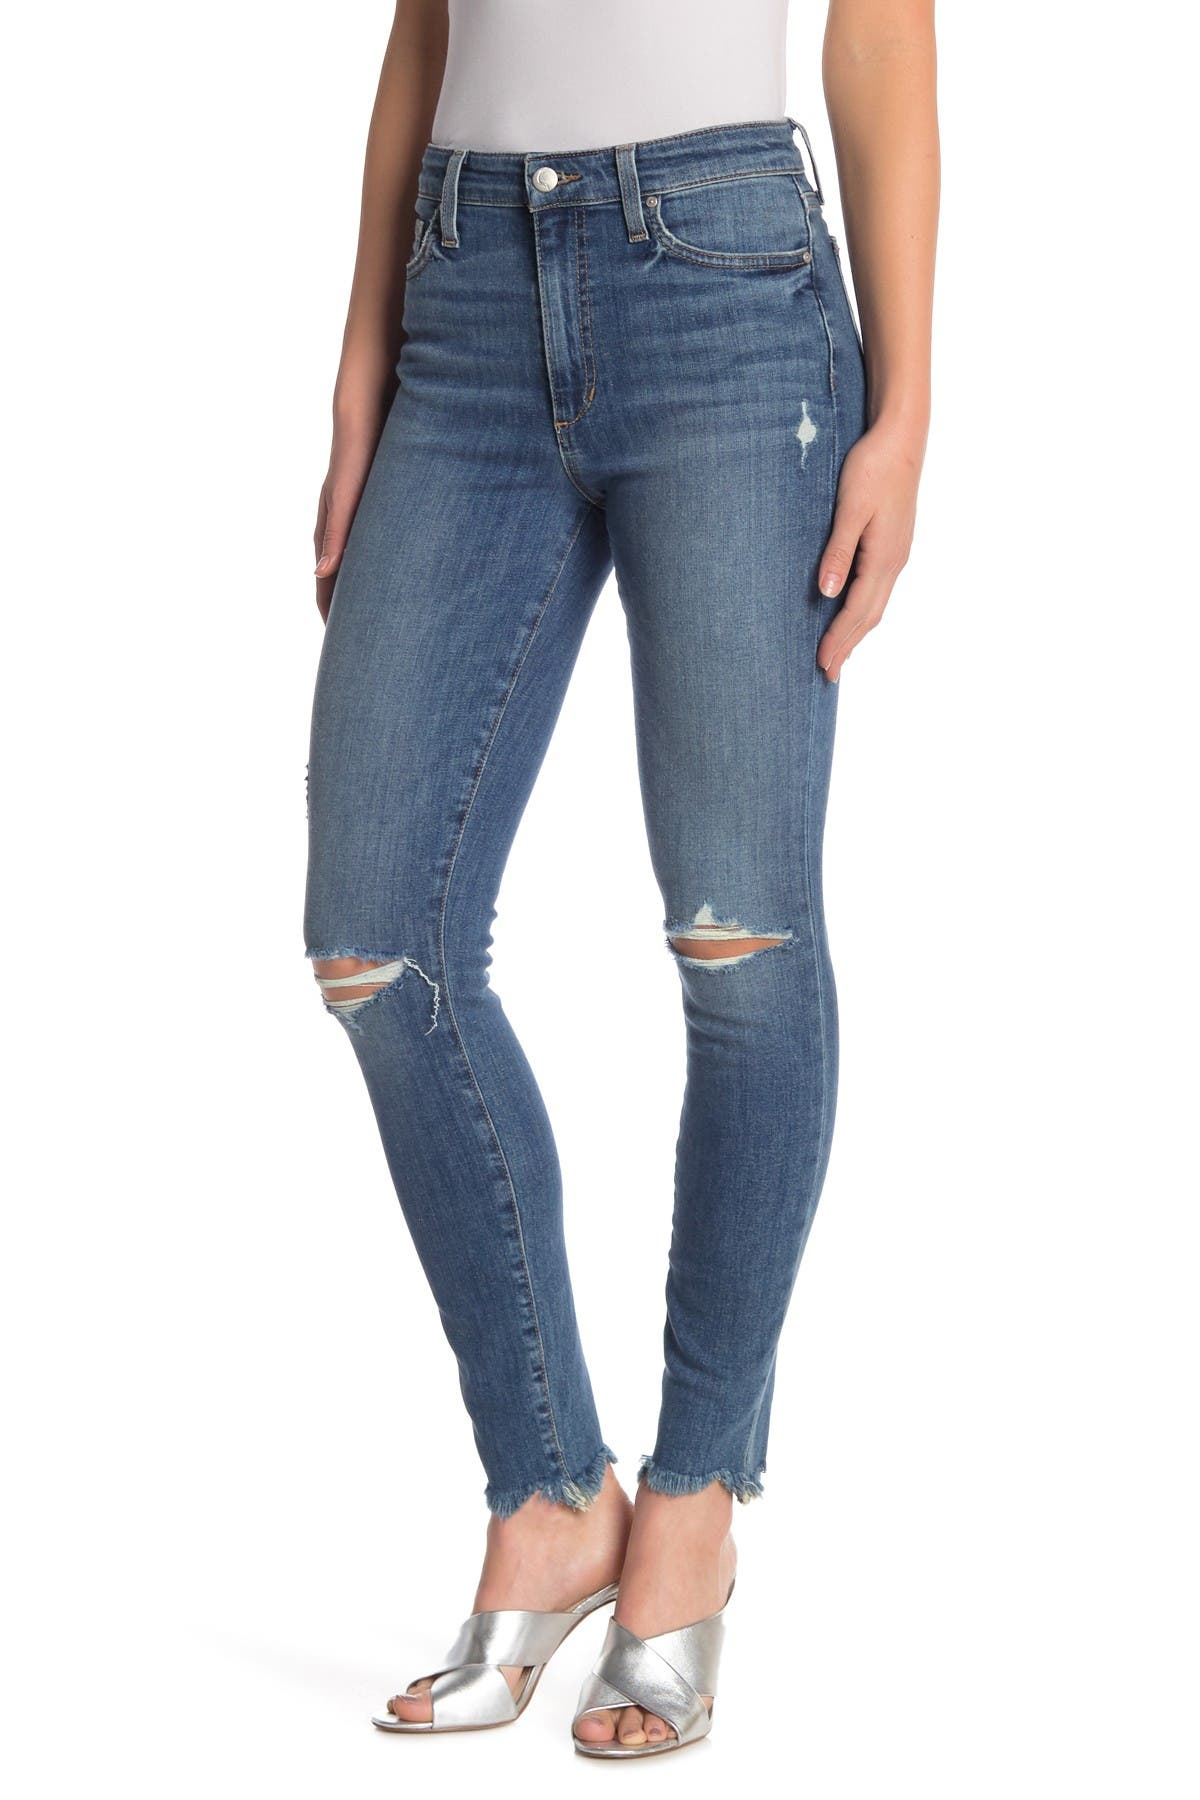 Image of Joe's Jeans Charlie Hi-Rise Ripped Knee Jeans